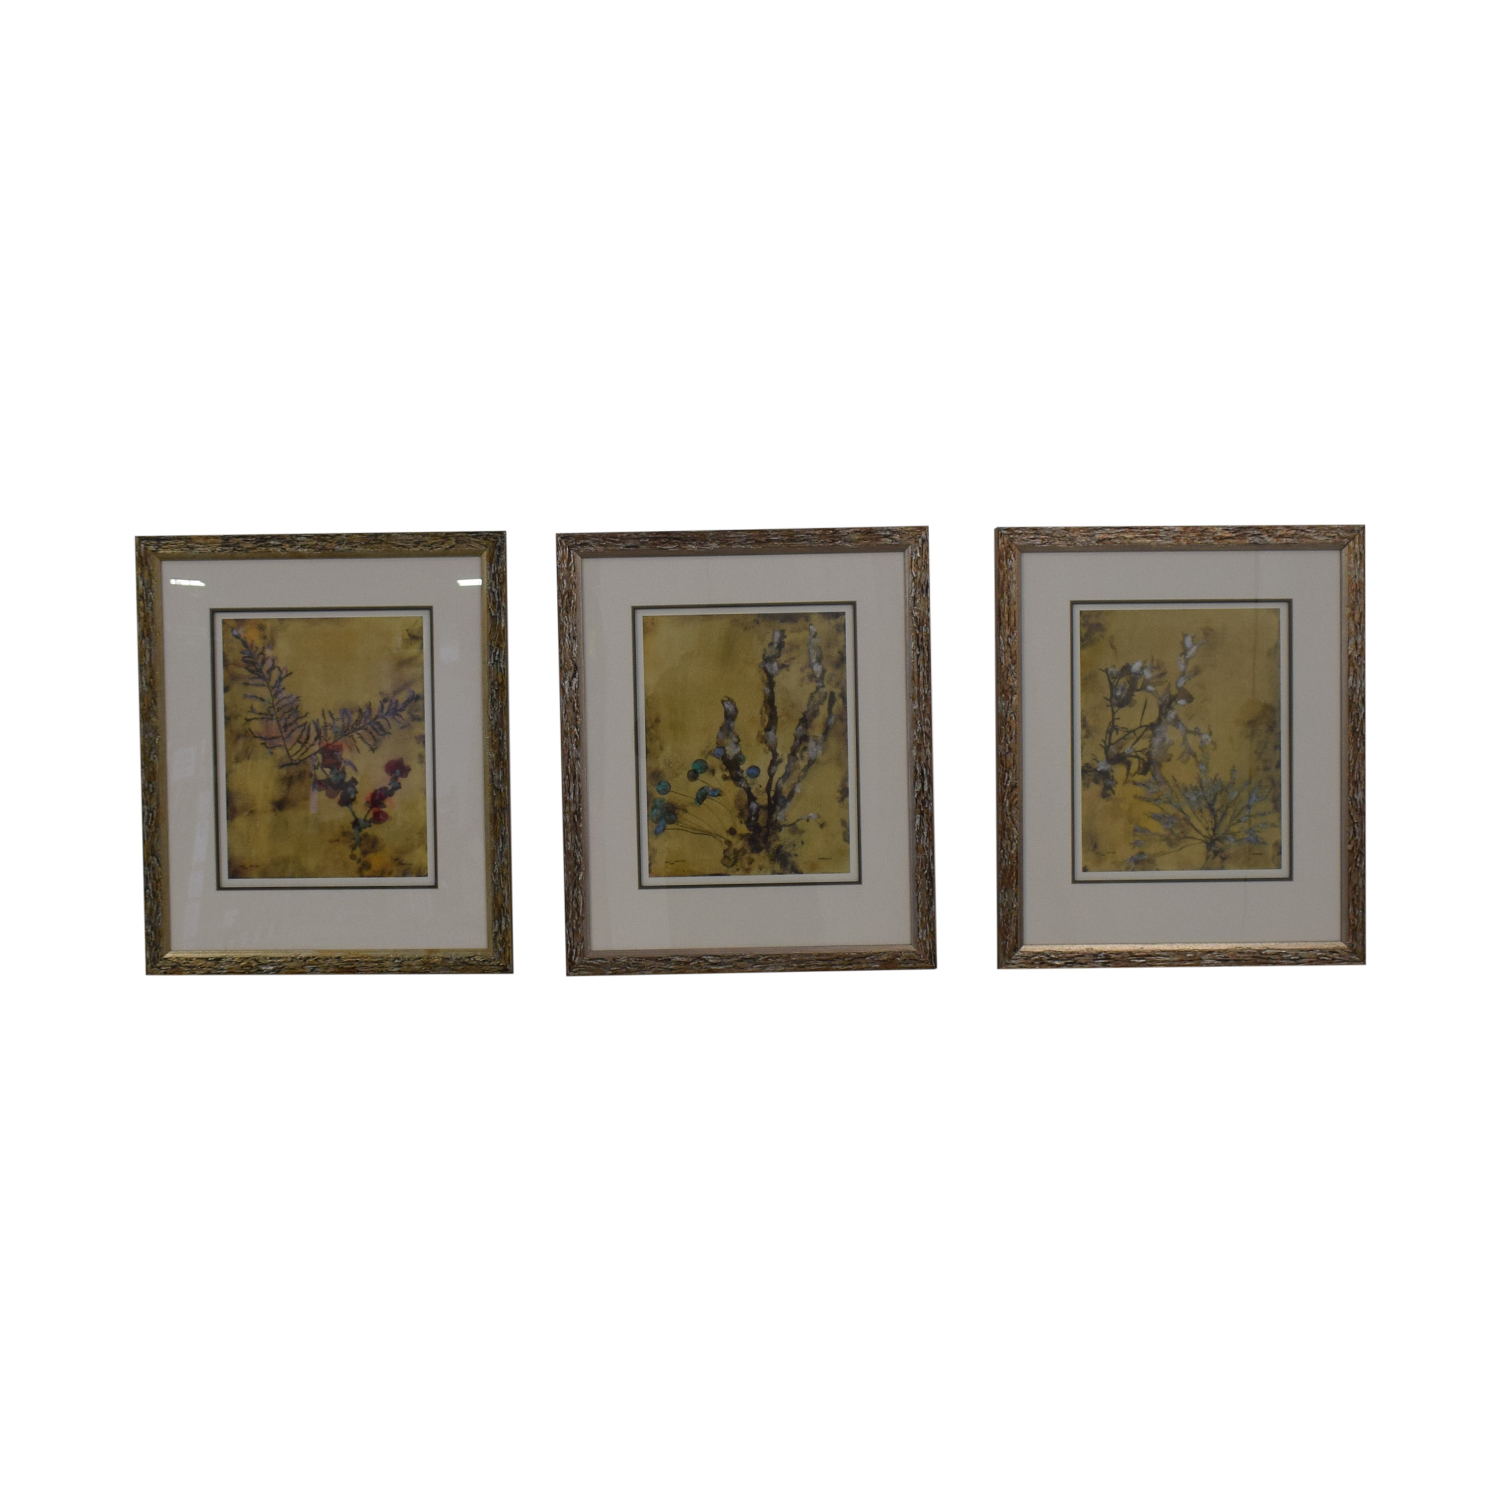 Ethan Allen Ethan Allen Botanical Framed Prints nj